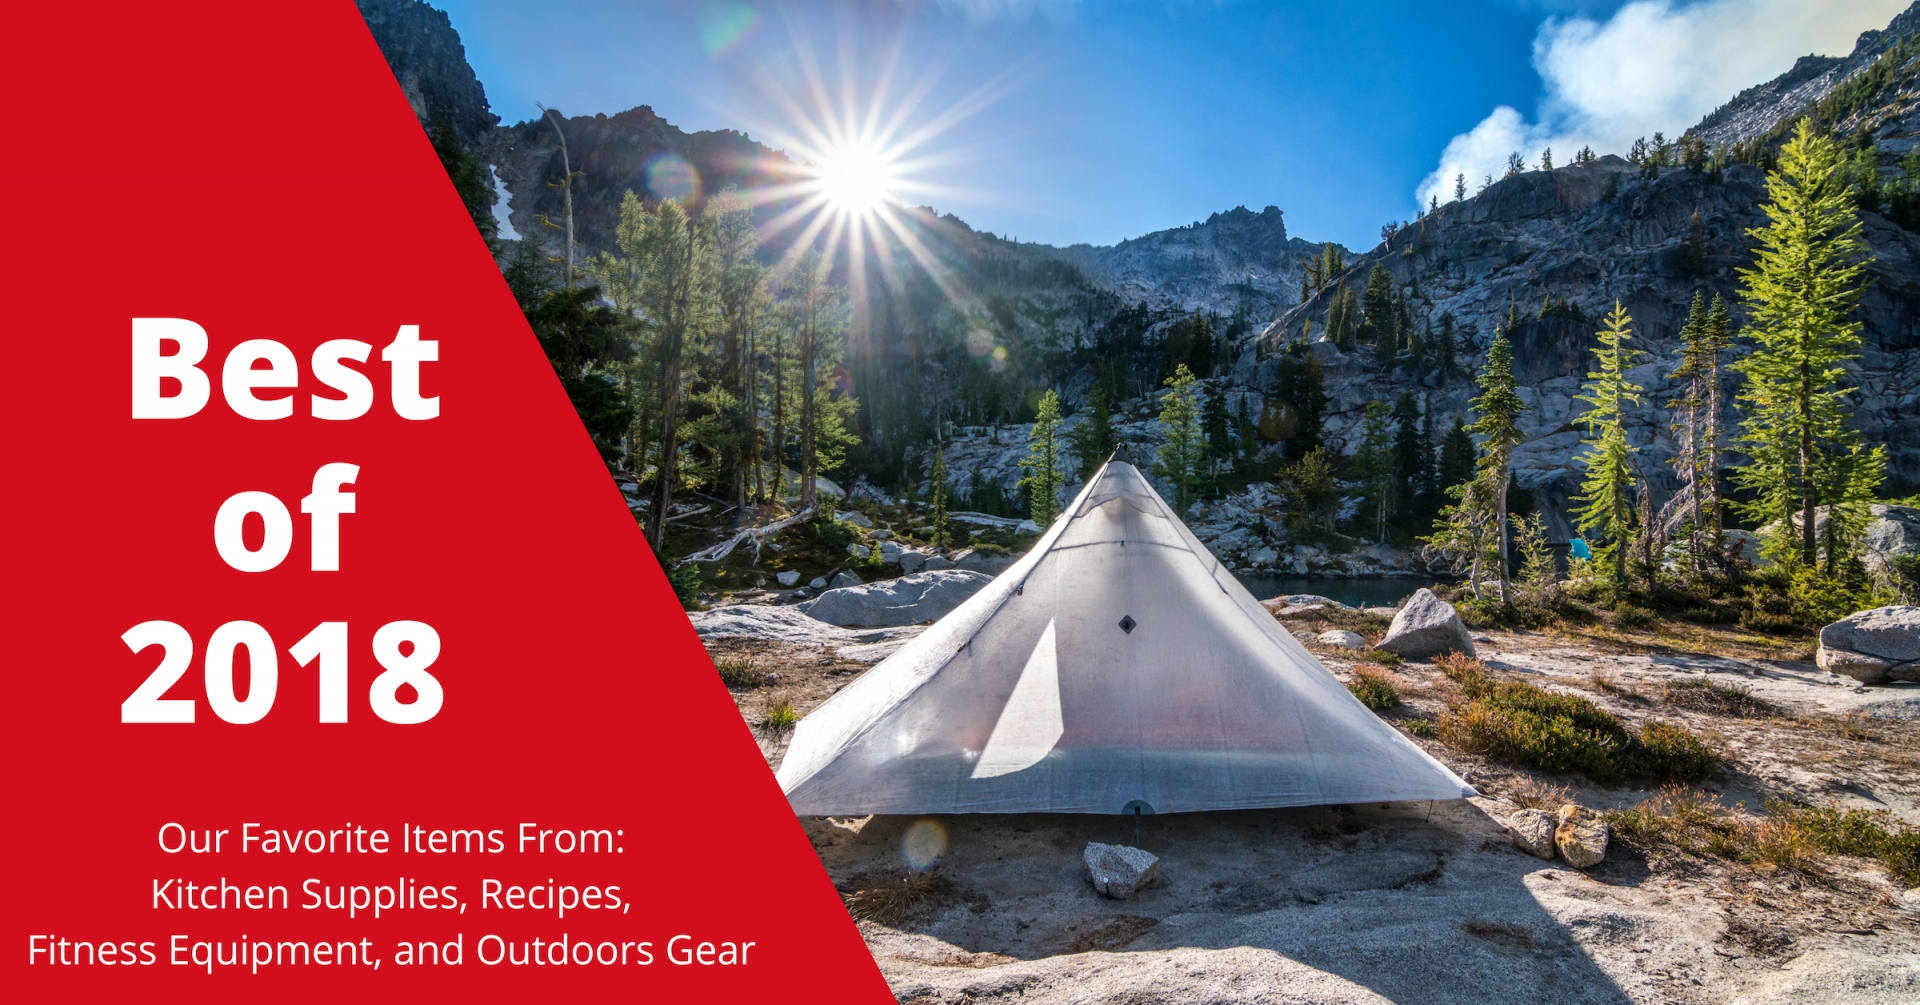 Our Top Picks for Fitness Products, Kitchen Supplies, Recipes, and Outdoors Gear for 2018